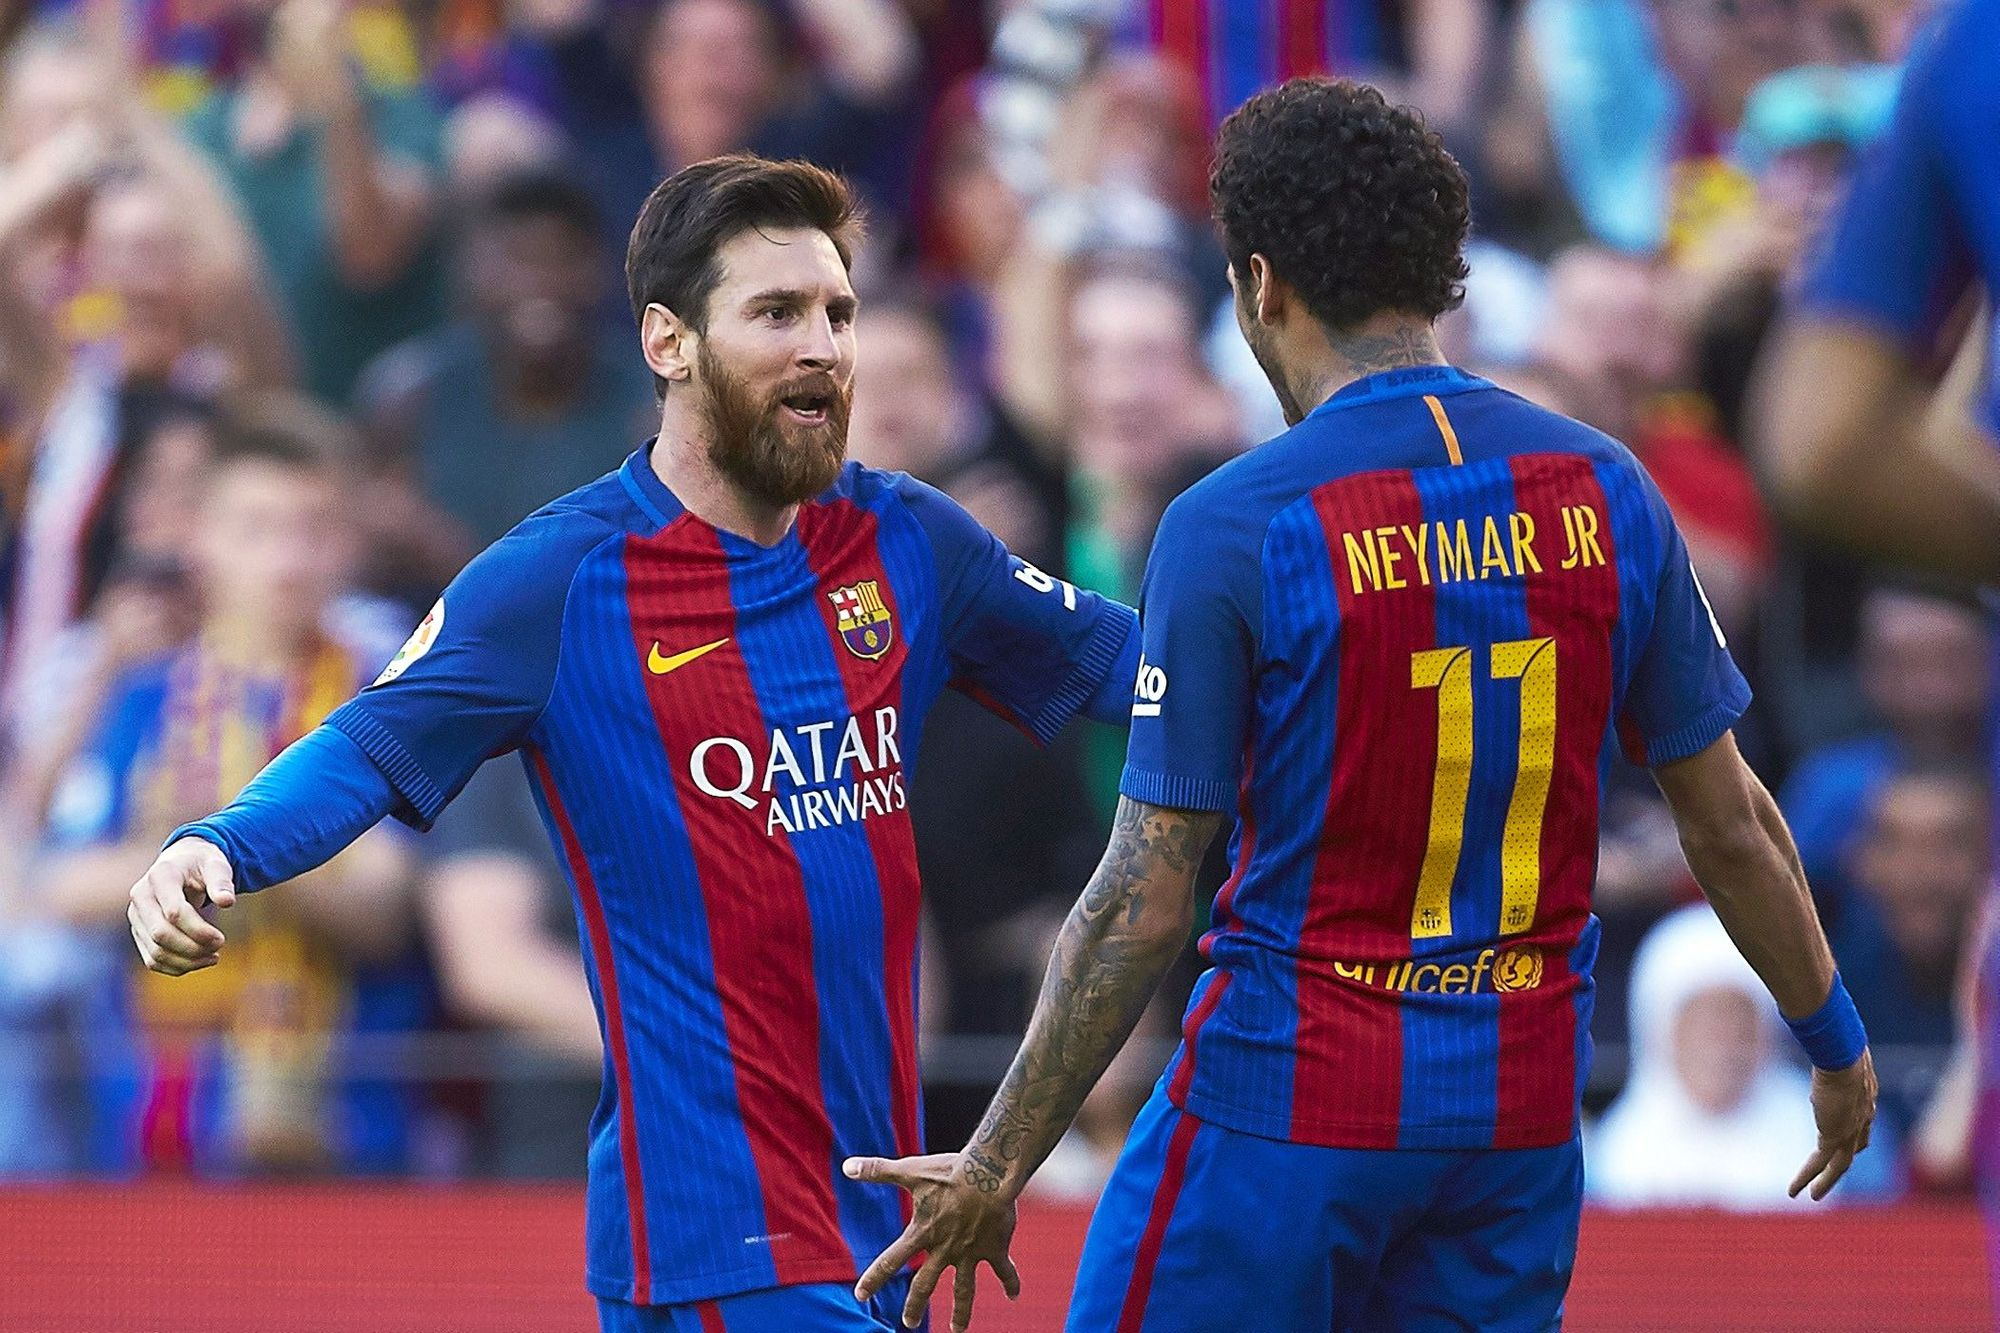 Only Neymar Jr. Can Save Messi and Barcelona Now